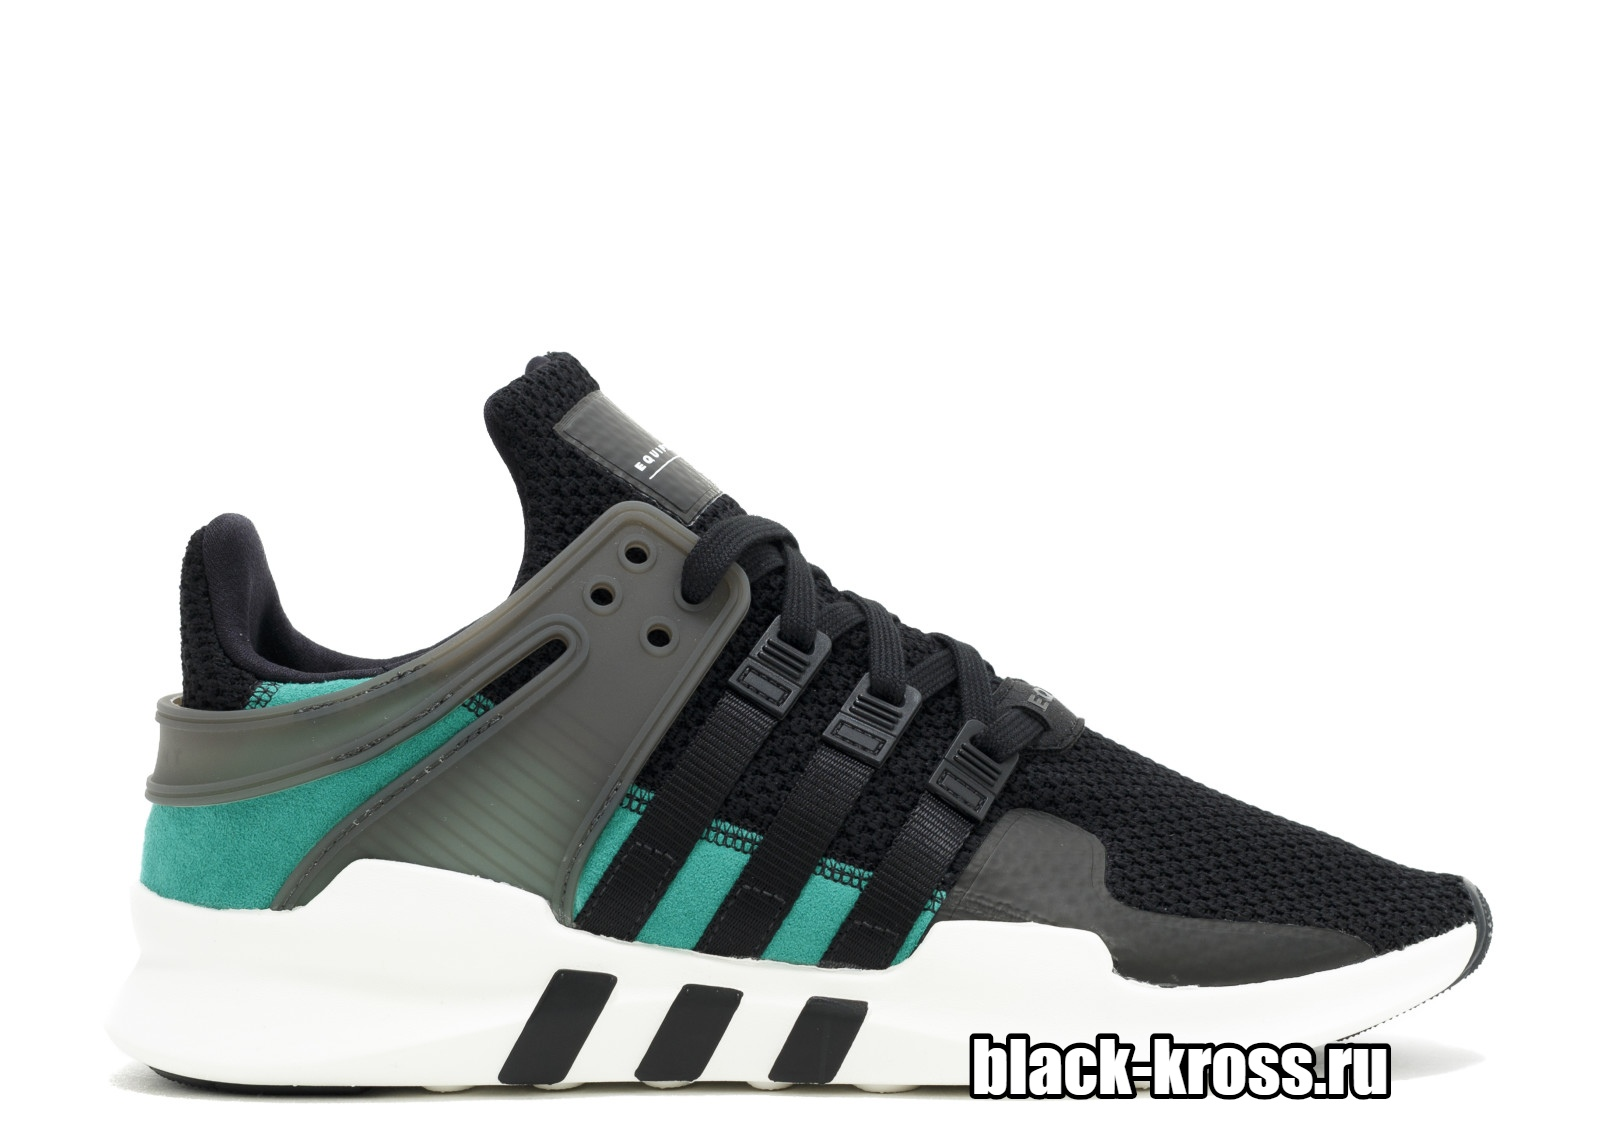 ADIDAS EQT SUPPORT ADV Black & Green (41-45)